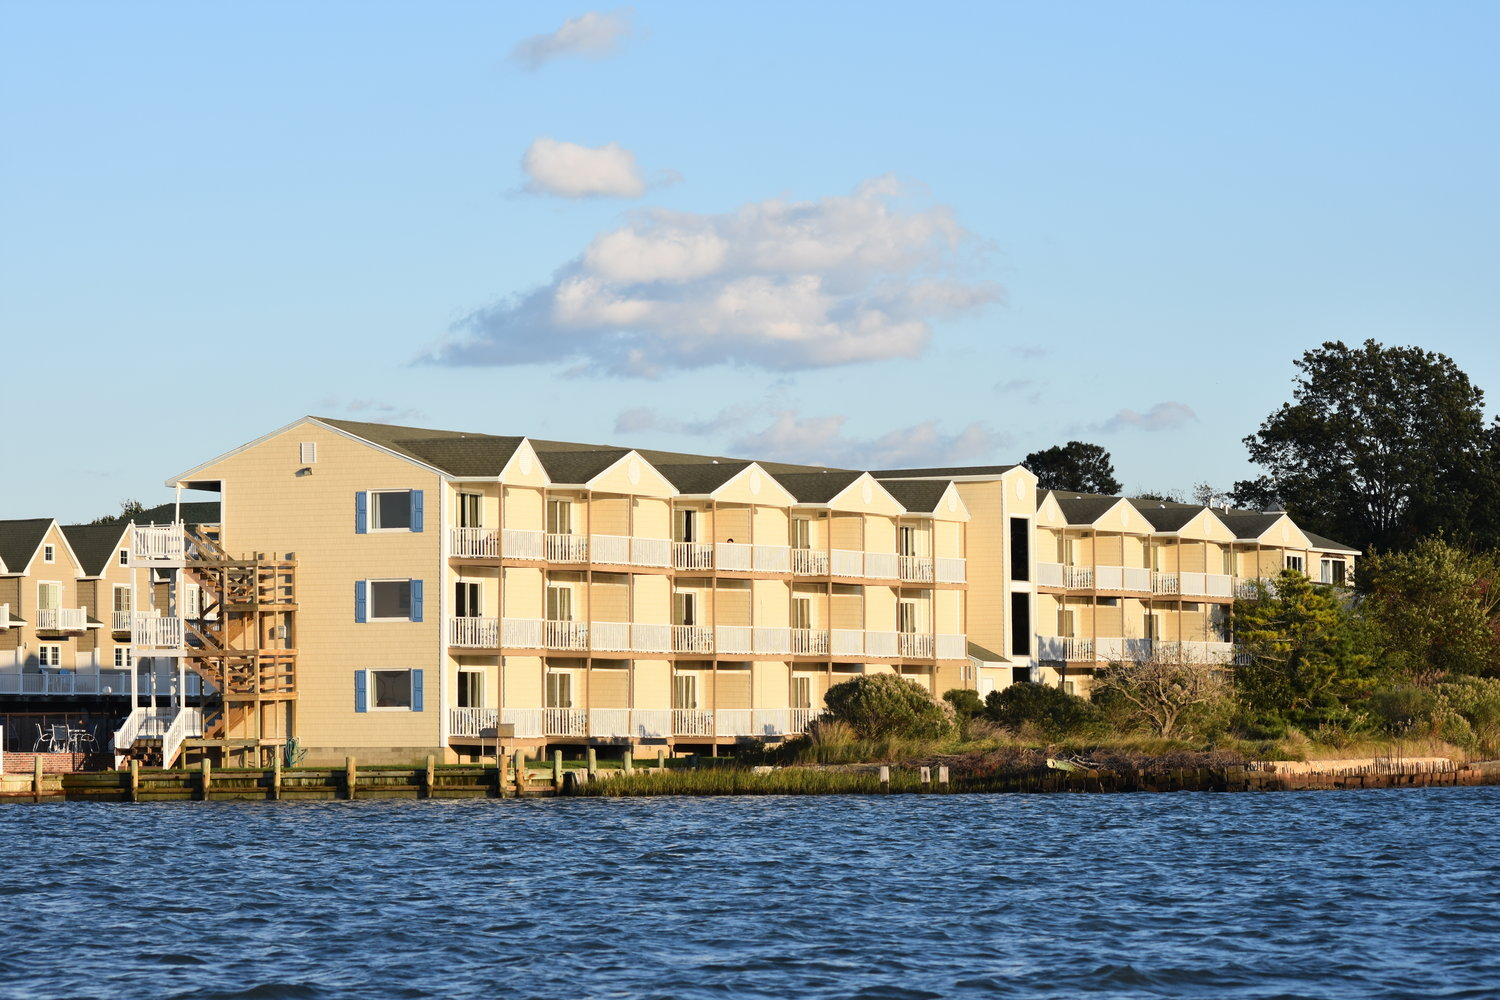 Waterside Inn Chincoteague Island